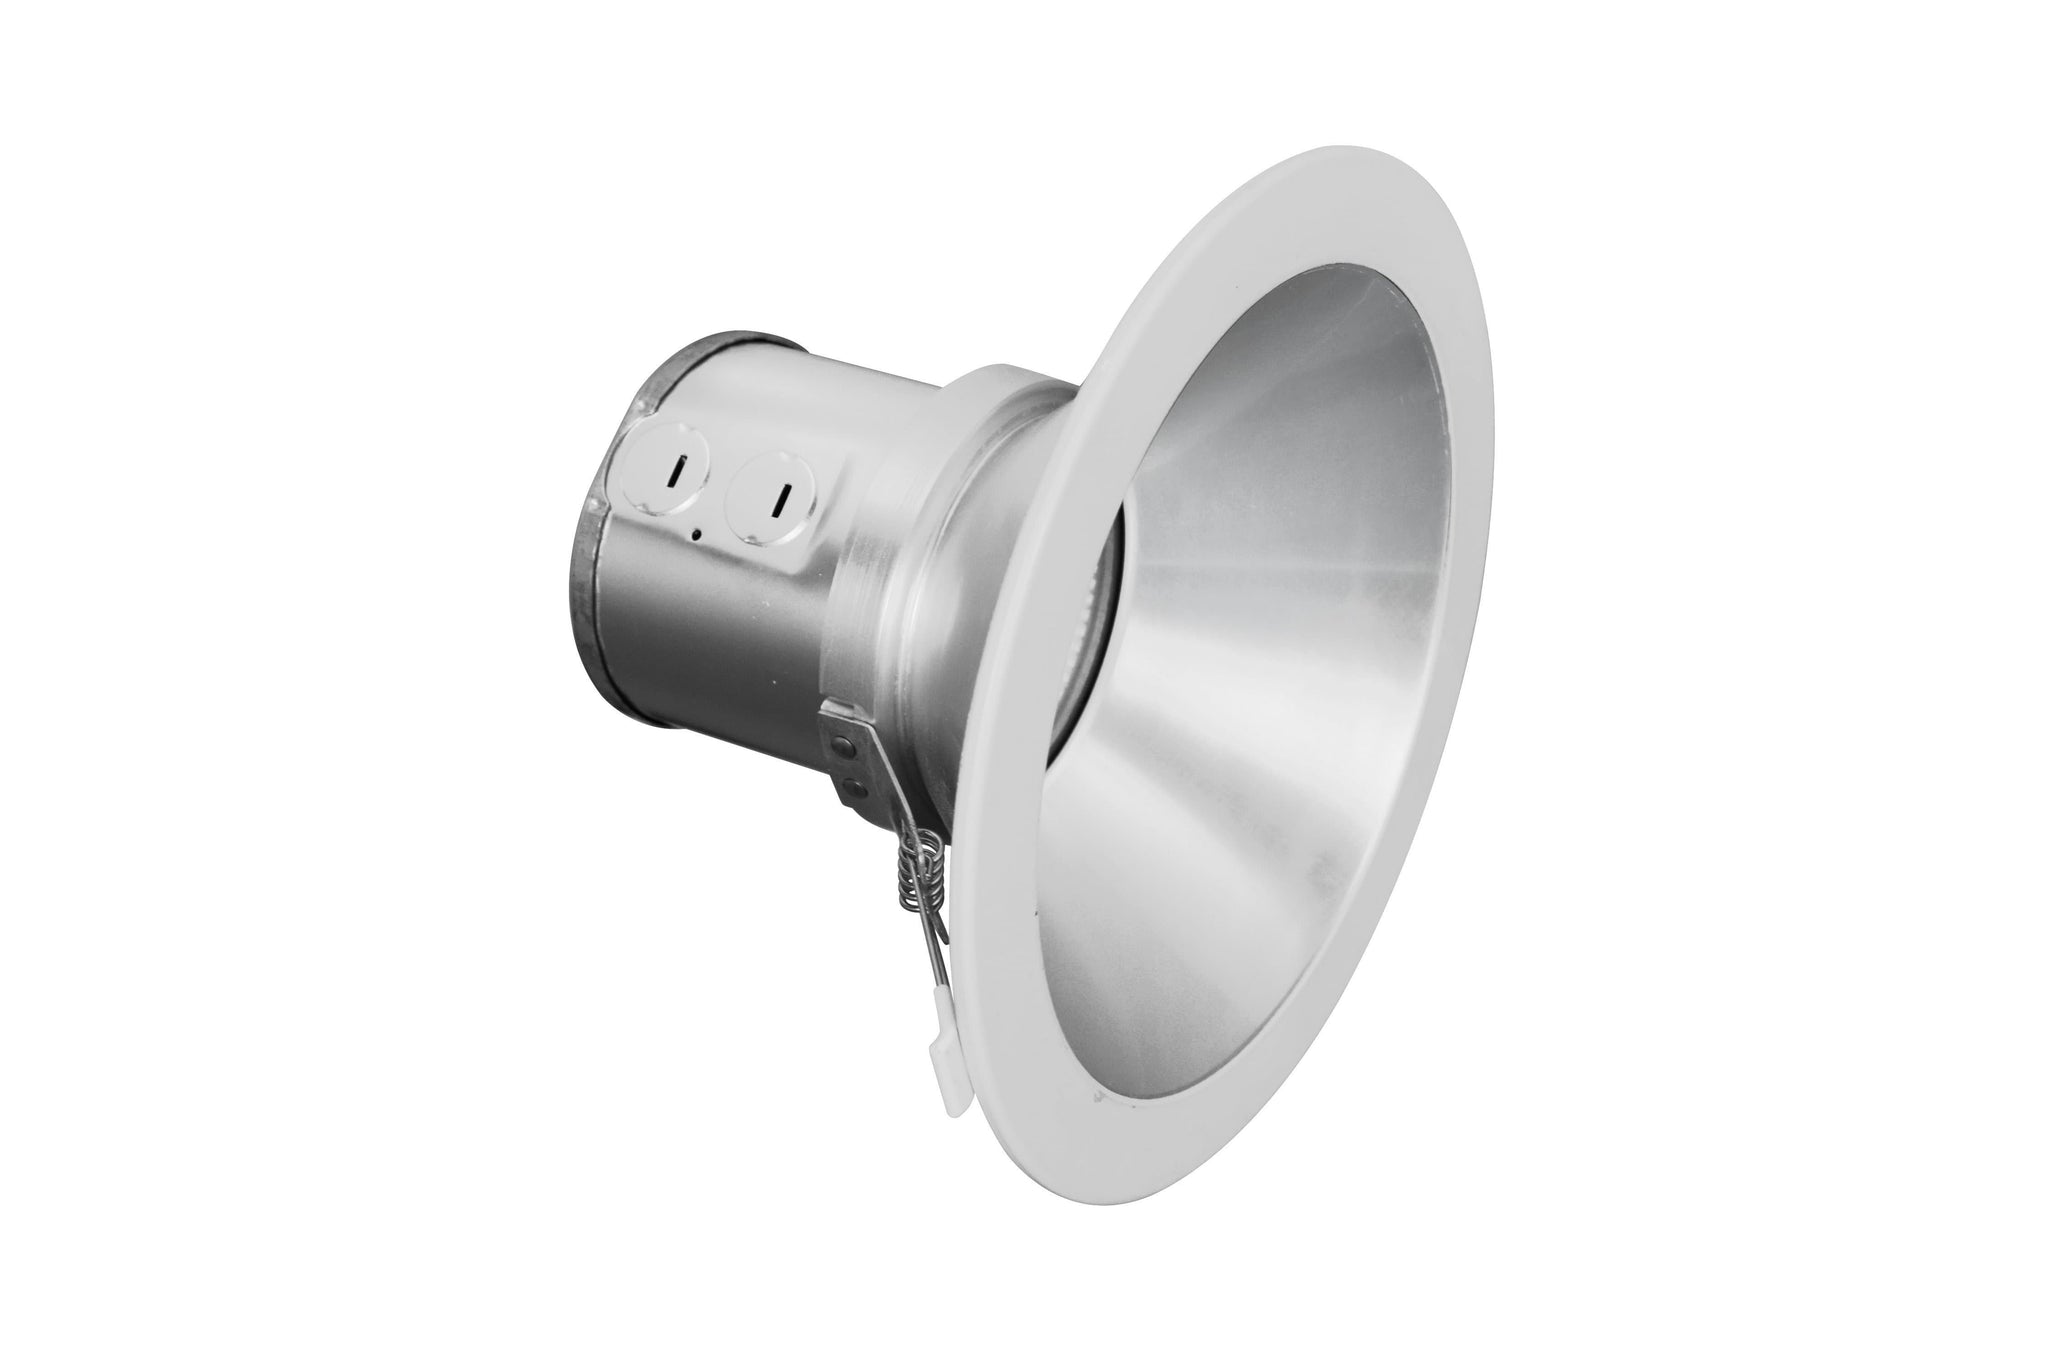 LED Commercial Downlight 6 inch led 15w 4000k  0-10V DIM